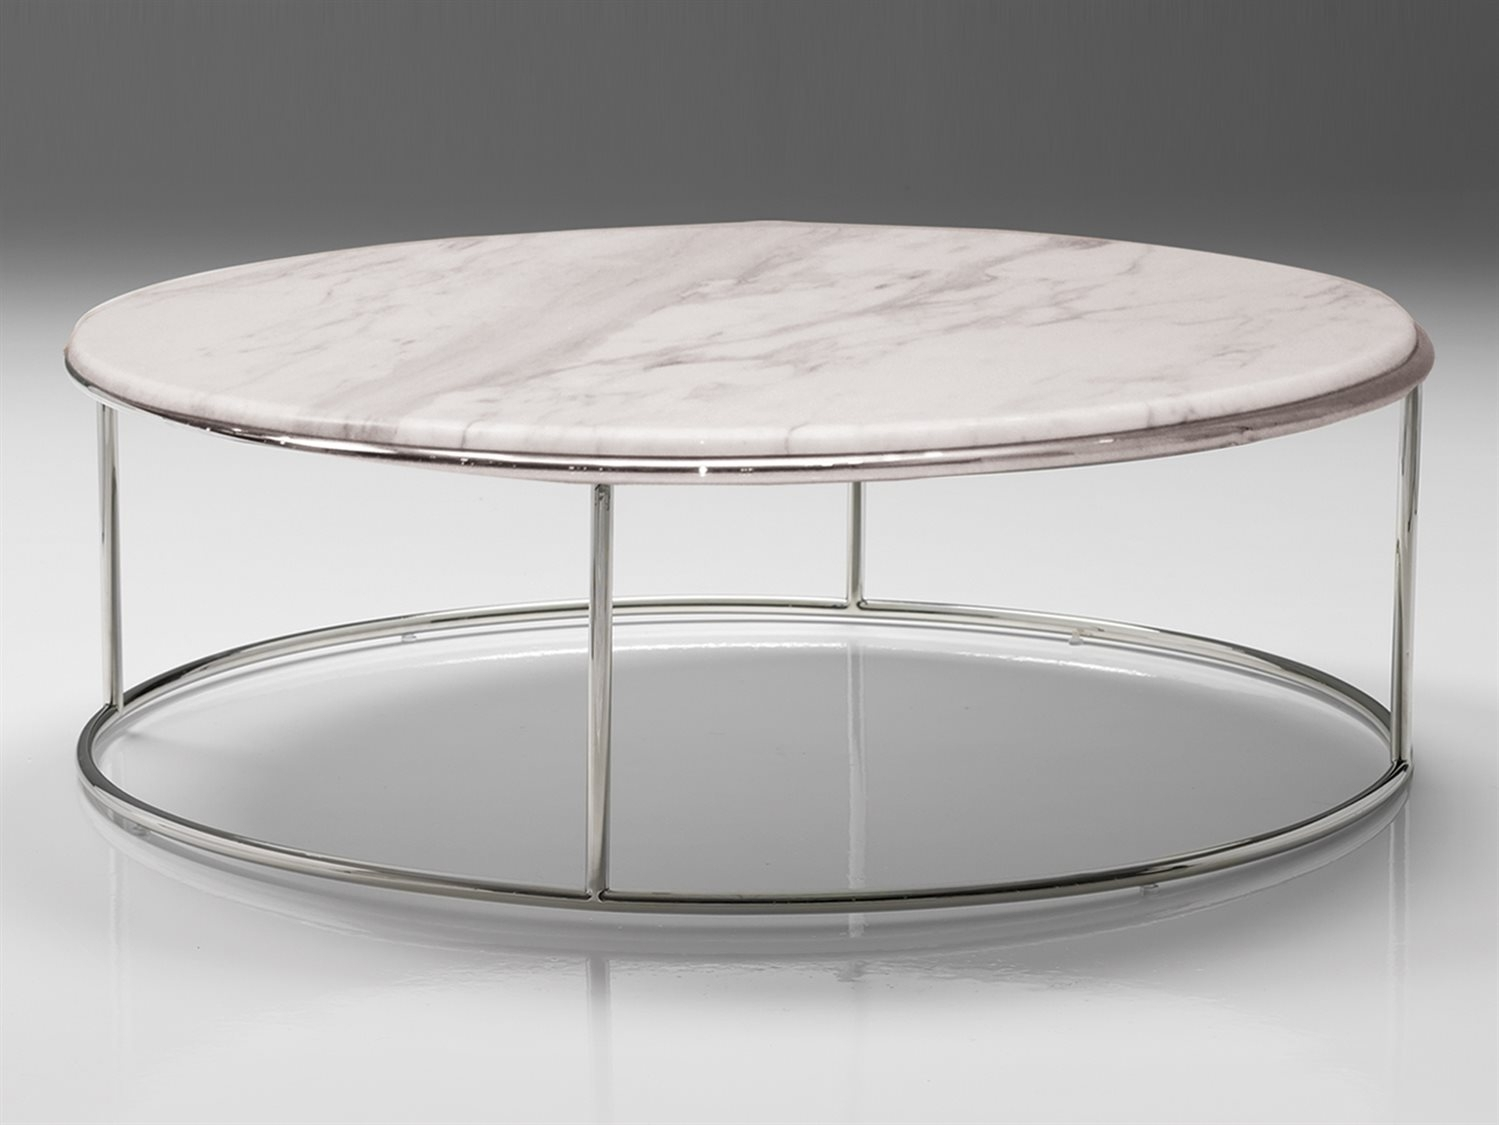 Beautiful Marble Round Coffee Table With Coffee Tables Design Inside Smart Round Marble Brass Coffee Tables (View 2 of 30)